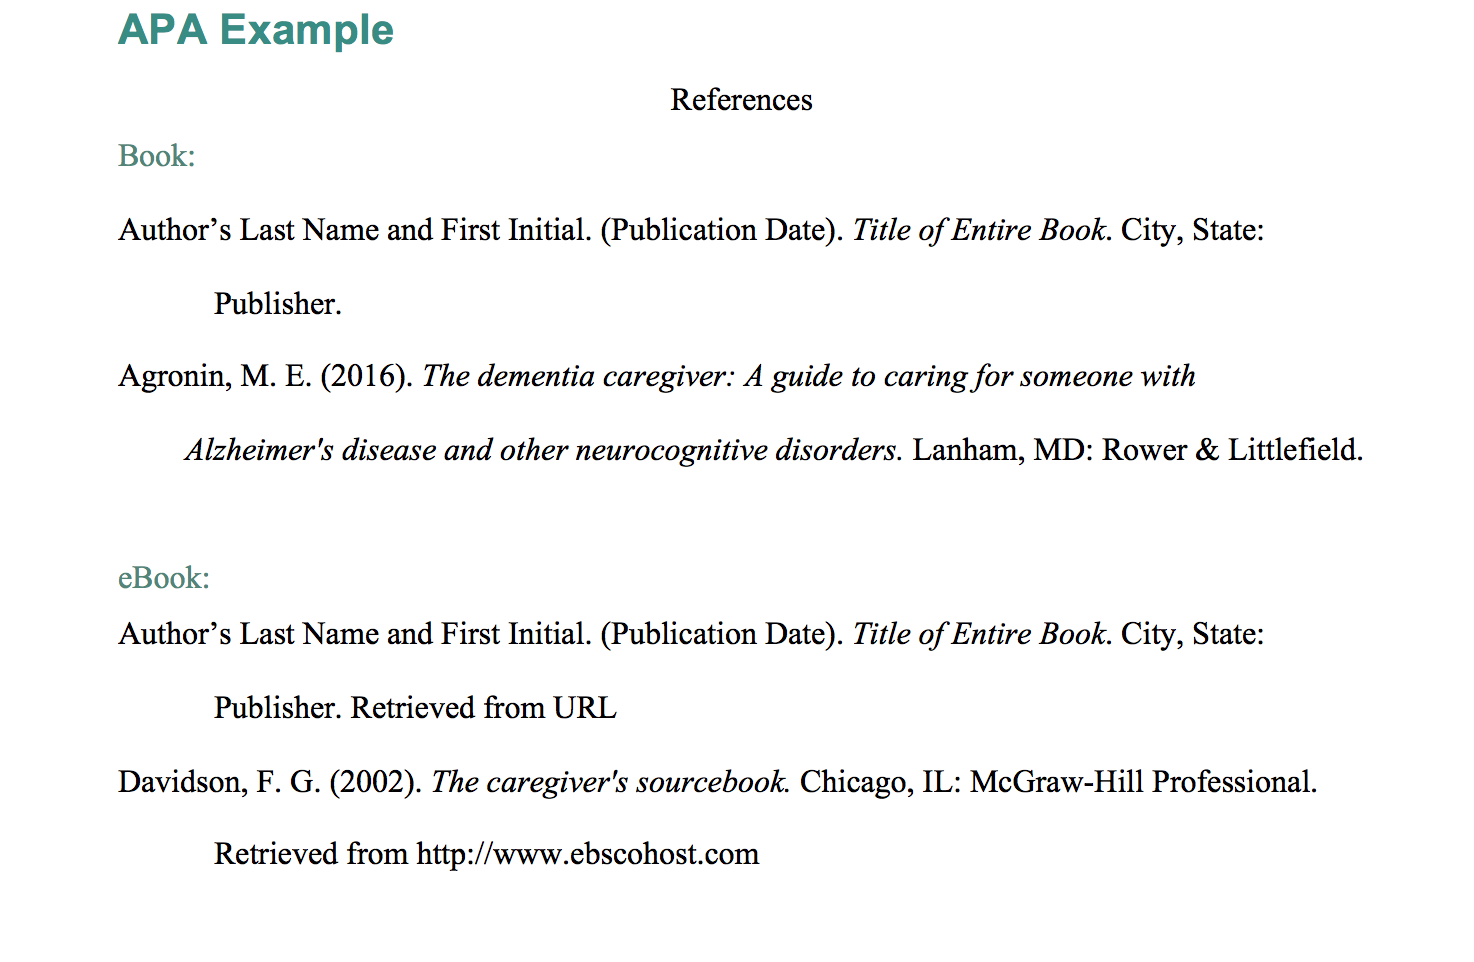 APA Example References Book: Author's Last Name and First Initial. (Publication Date). Title of Entire Book. City, State: Publisher.  Agronin, M. E. (2016). The dementia caregiver: A guide to caring for someone with Alzheimer's disease and other neurocognitive disorders. Lanham, MD: Rower & Littlefield.  eBook: Author's Last Name and First Initial. (Publication Date). Title of Entire Book. City, State: Publisher. Retrieved from URL  Davidson, F. G. (2002). The caregiver's sourcebook. Chicago, IL: McGraw-Hill Professional. 		Retrieved from http://www.ebscohost.com